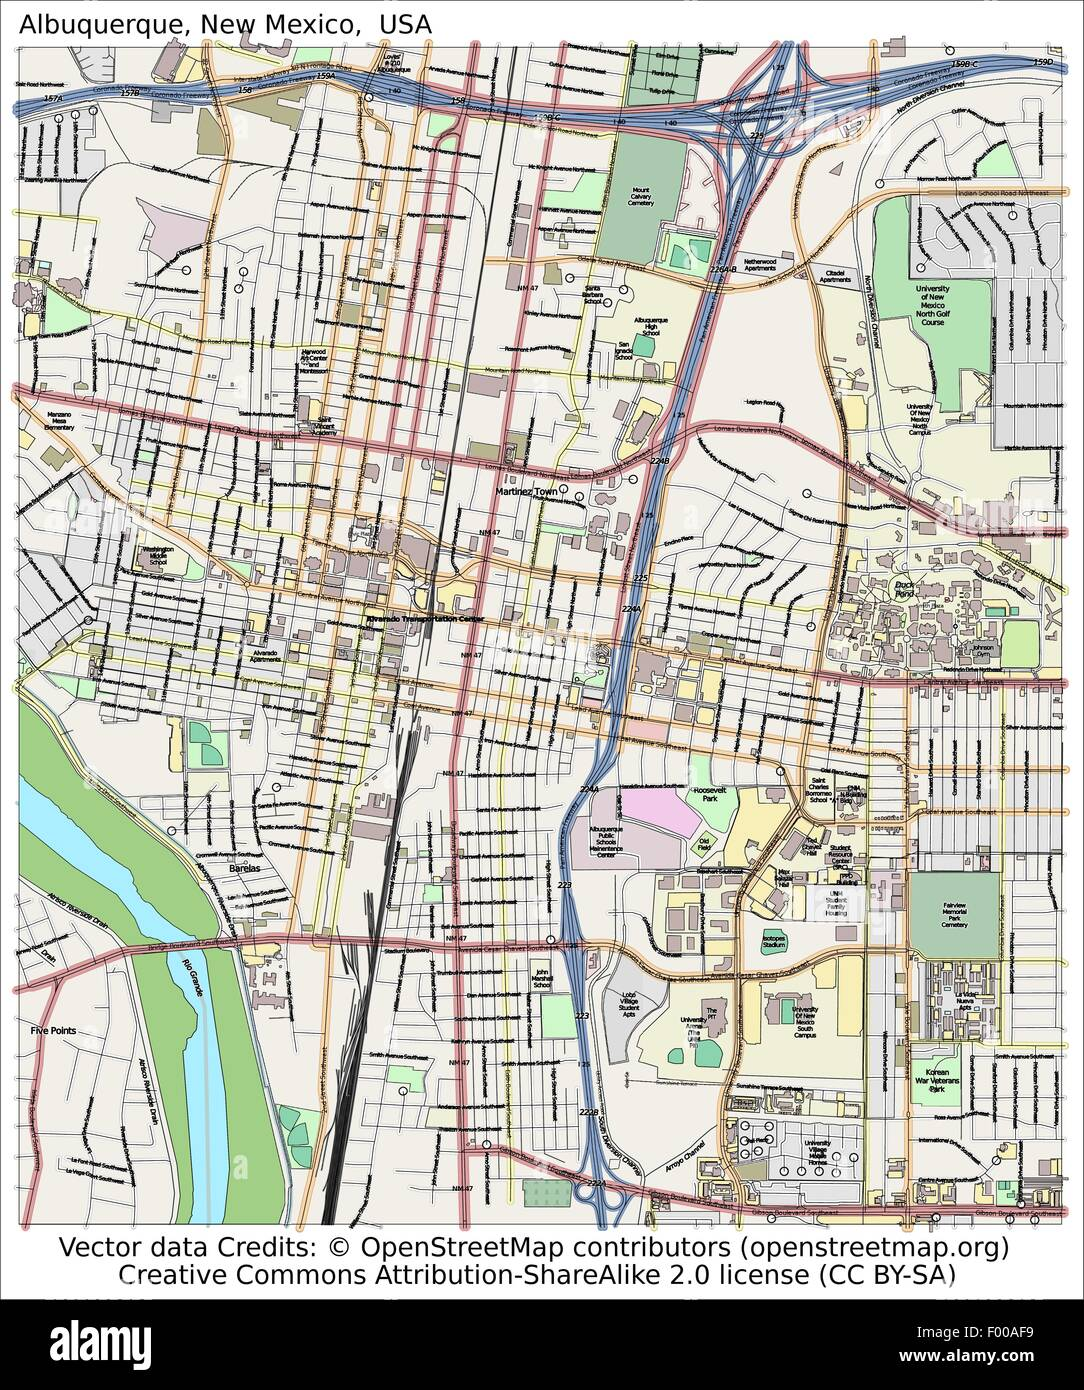 Albuquerque New Mexico USA Land Stadt Insel Staat Lageplan Vr ... on